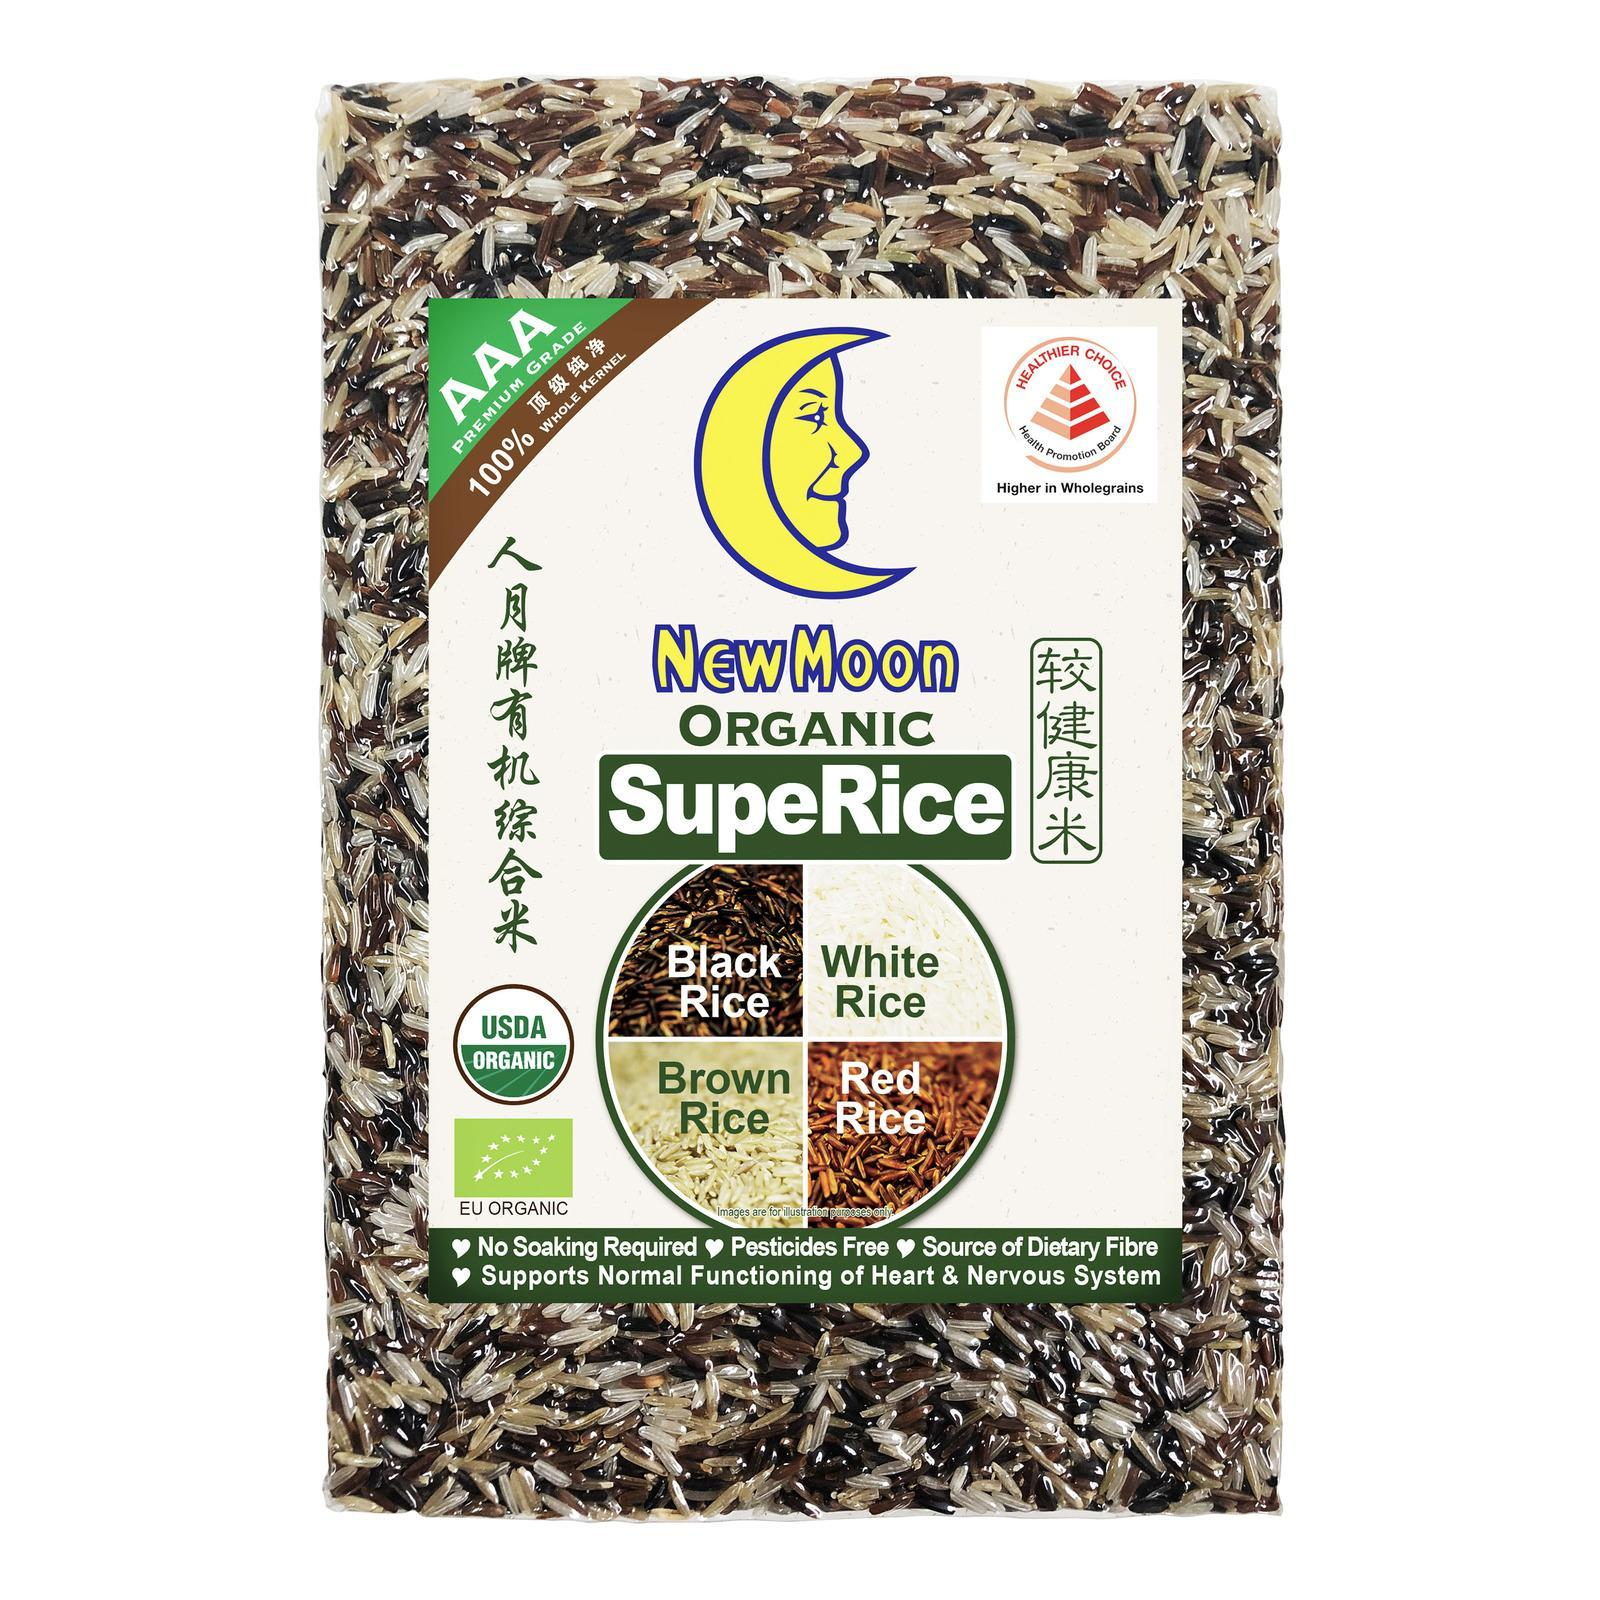 New Moon Organic Superice (4 In 1) Rice By Redmart.